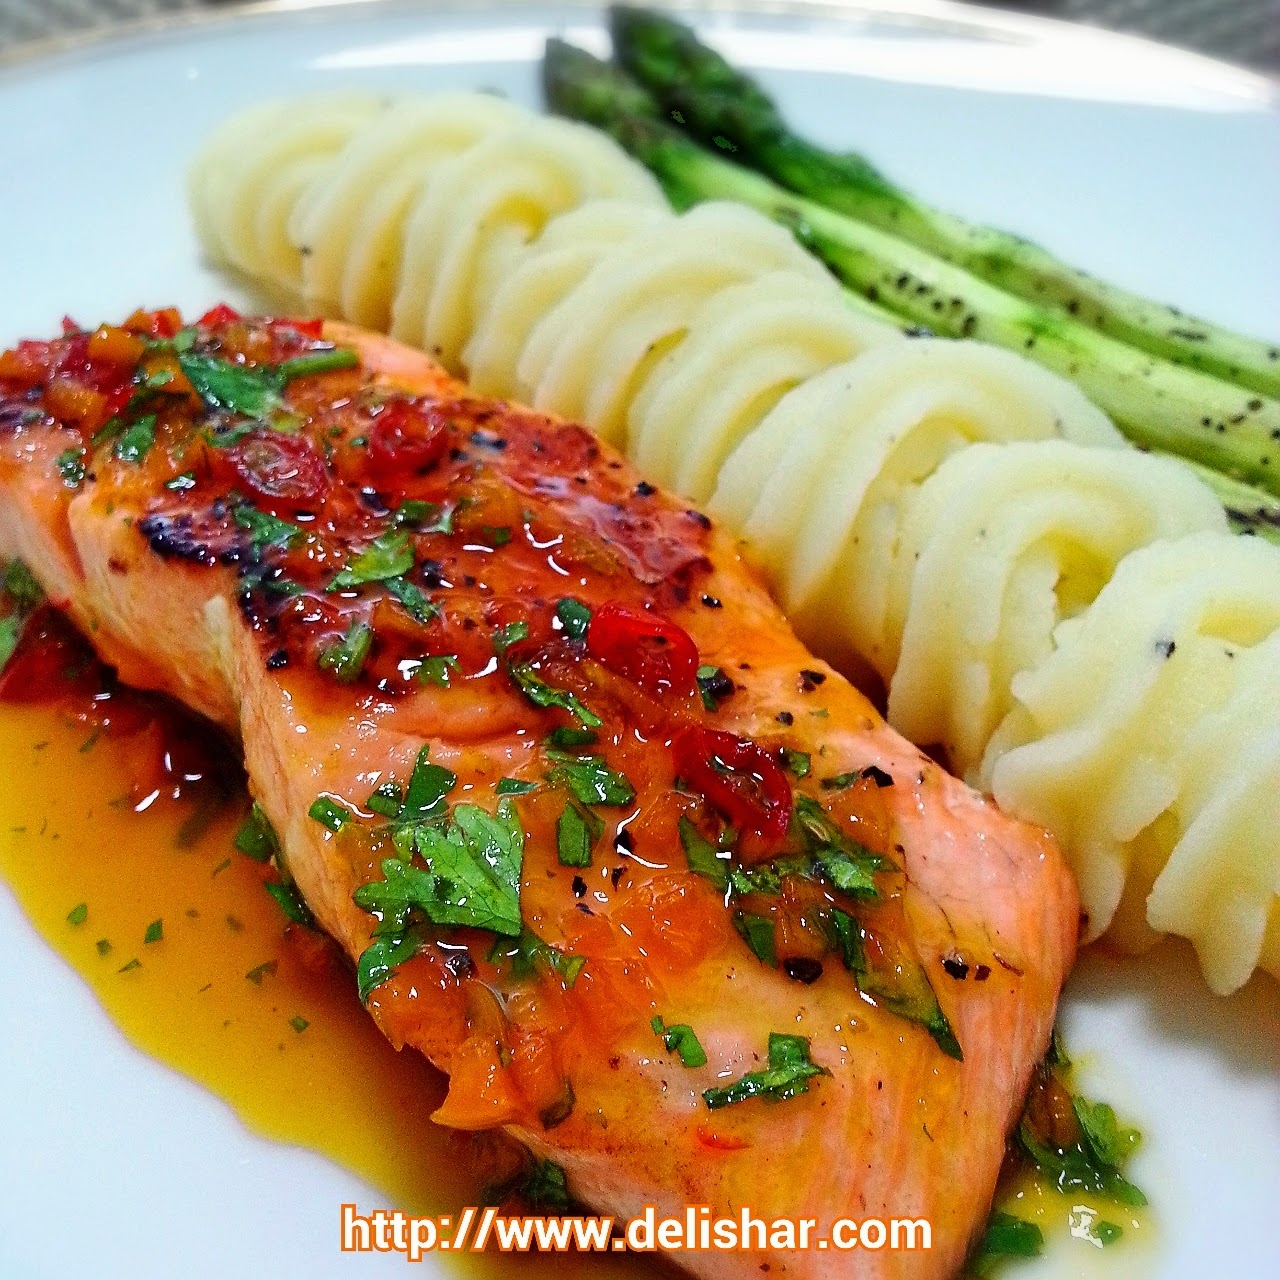 ... & Food Blog: Salmon with Spicy Orange Glaze and Grilled Asparagus